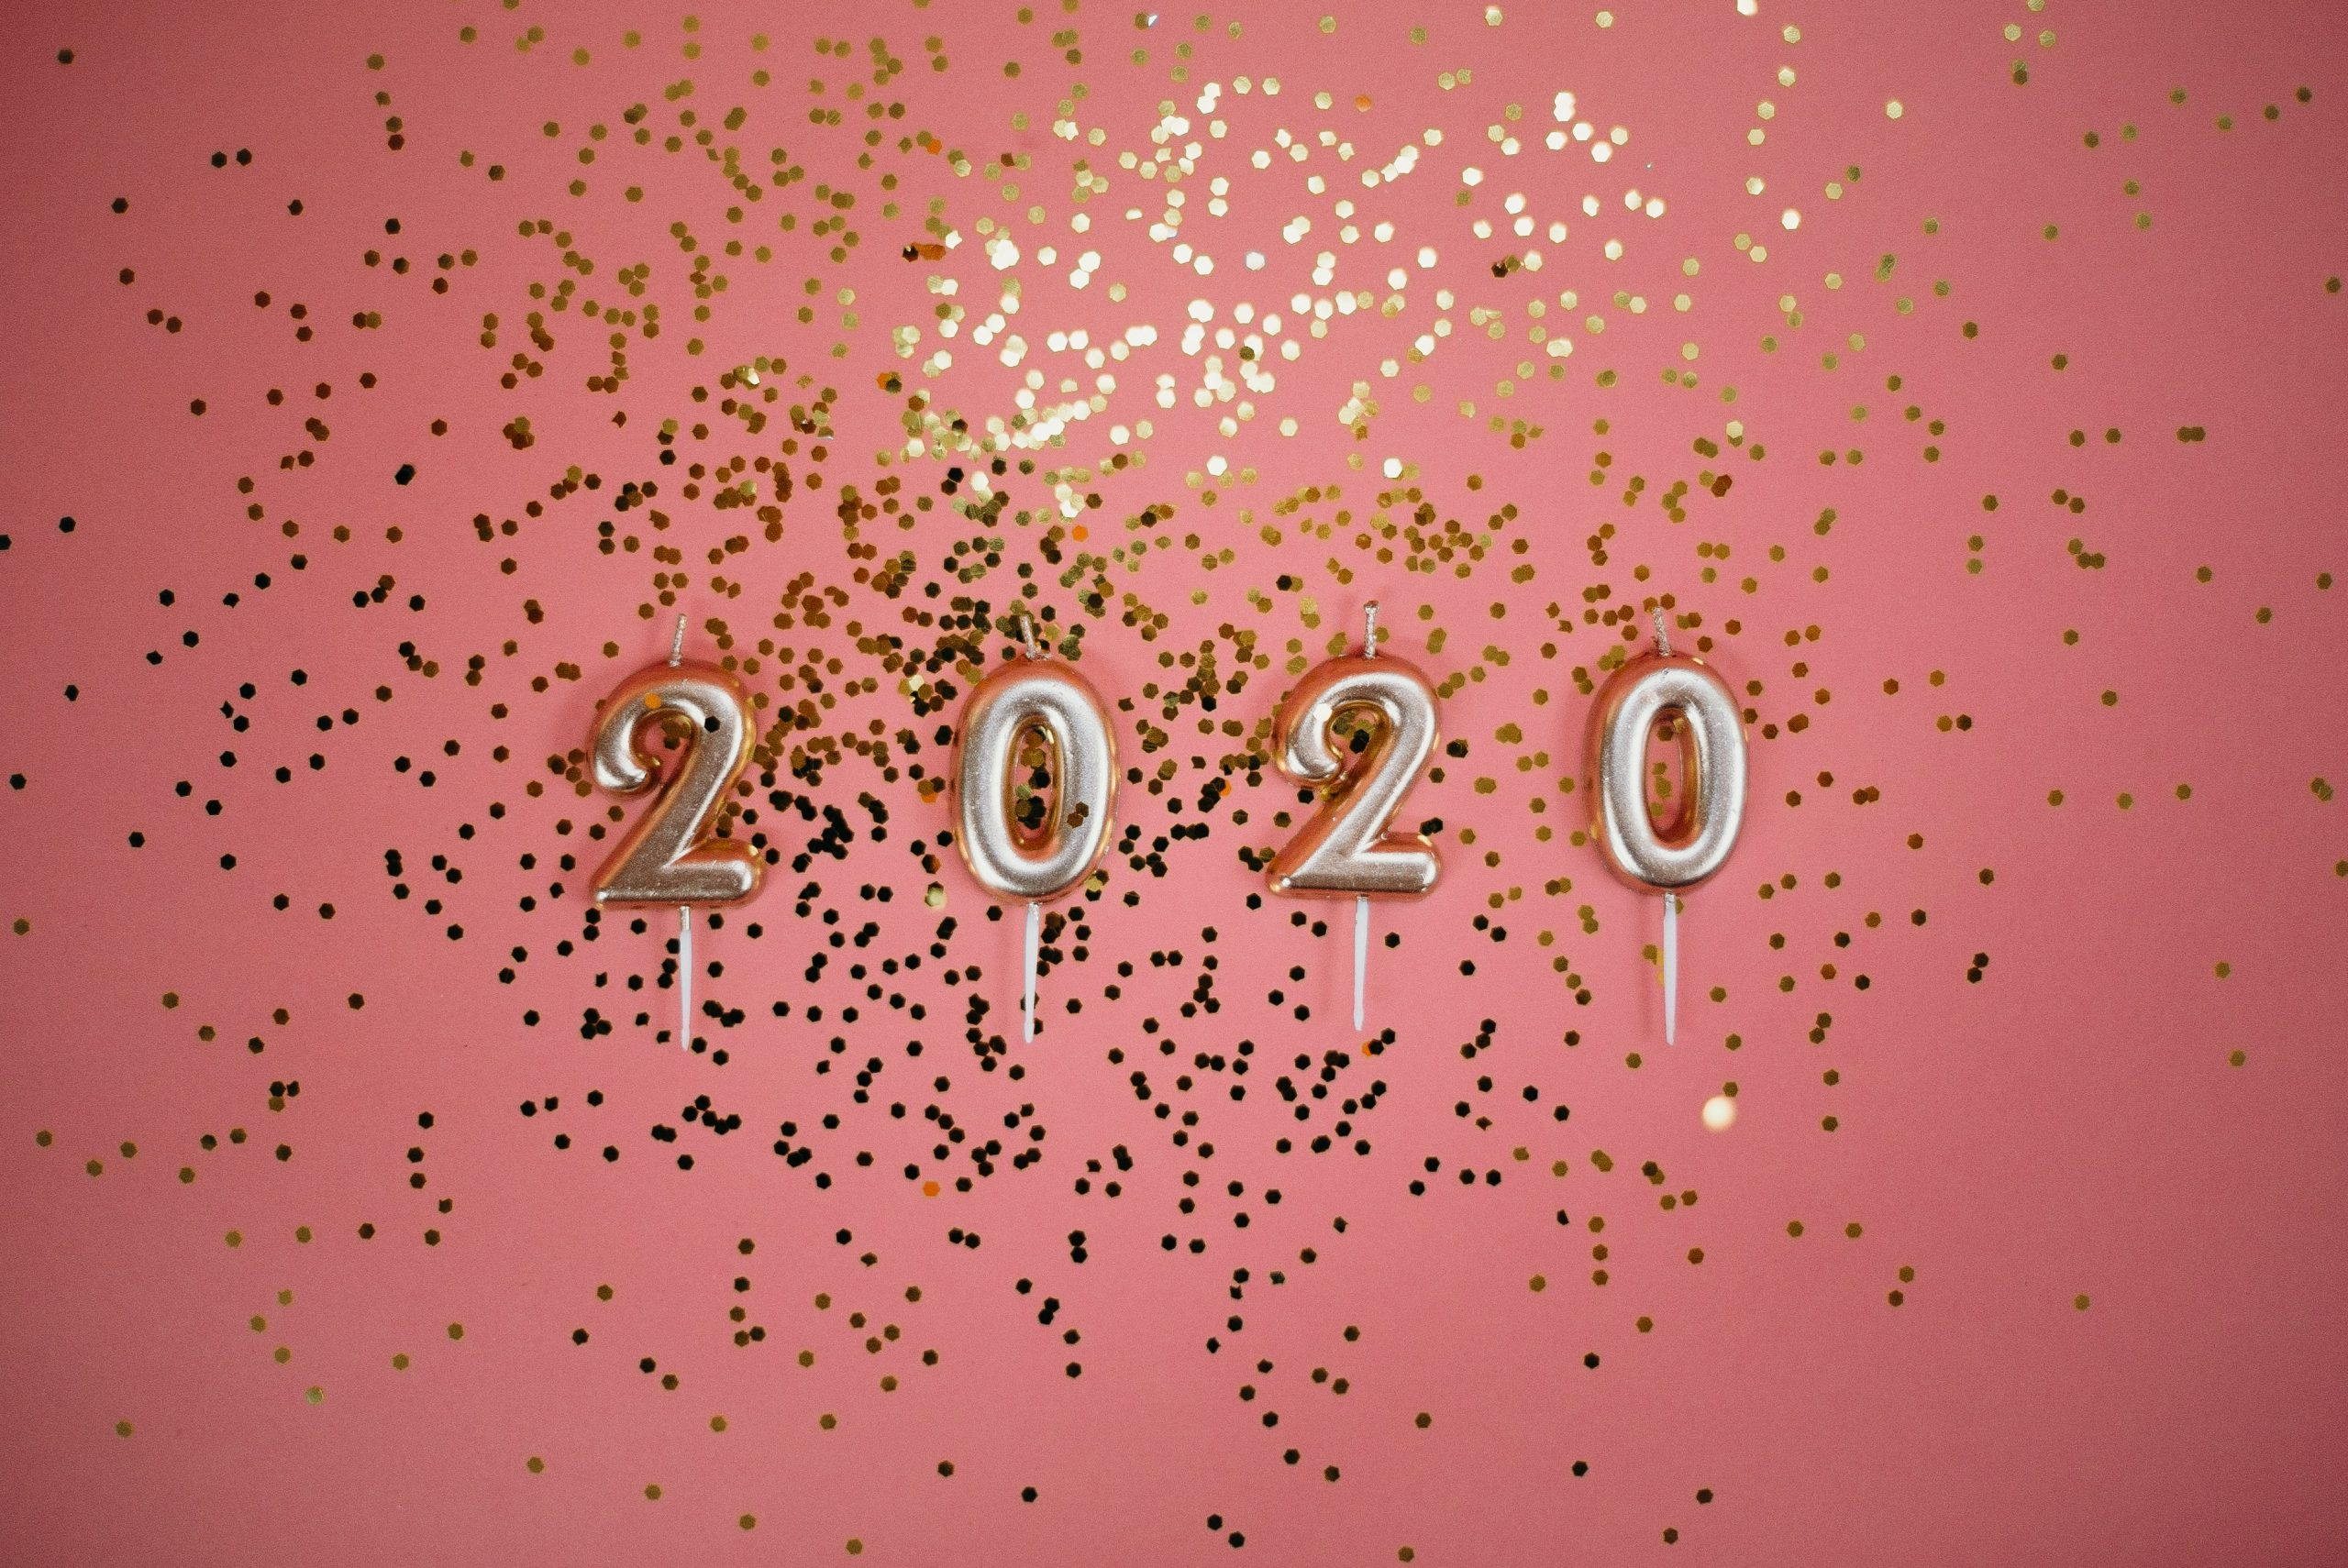 100 New Year's Resolutions For A New Decade